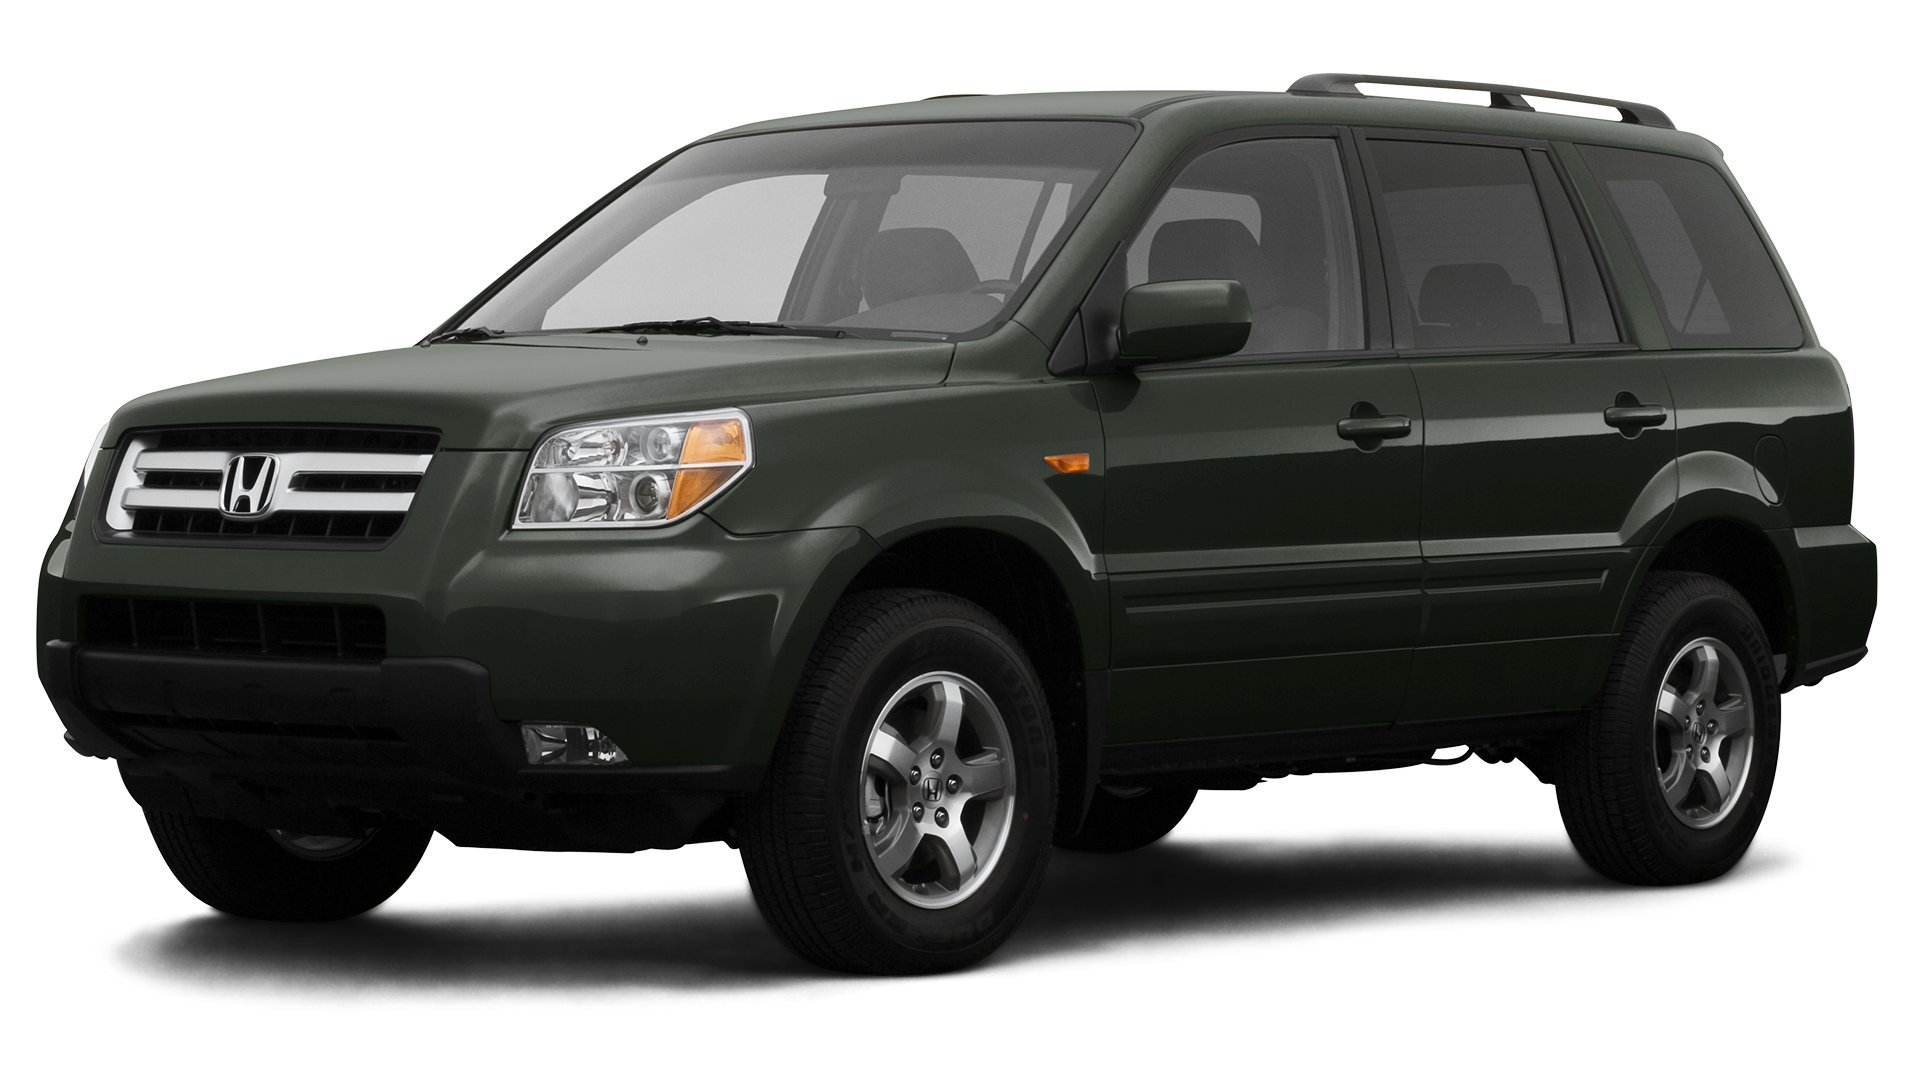 2007 honda pilot reviews images and specs vehicles. Black Bedroom Furniture Sets. Home Design Ideas